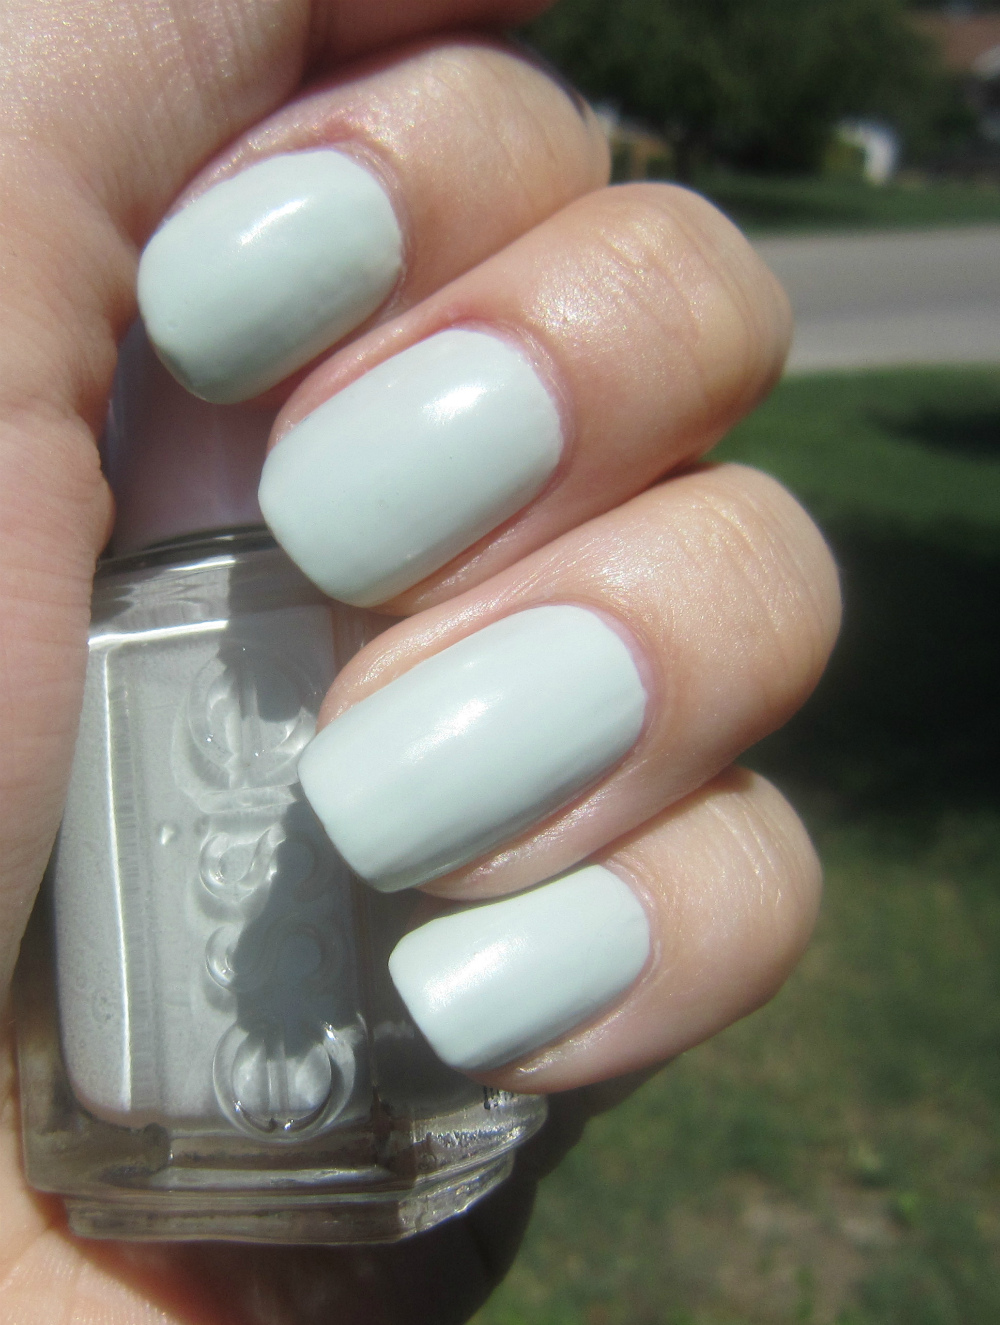 Essie Pale Pink Comparison Ballet Slippers Minimalistic: Concrete And Nail Polish: Essie Absolutely Shore